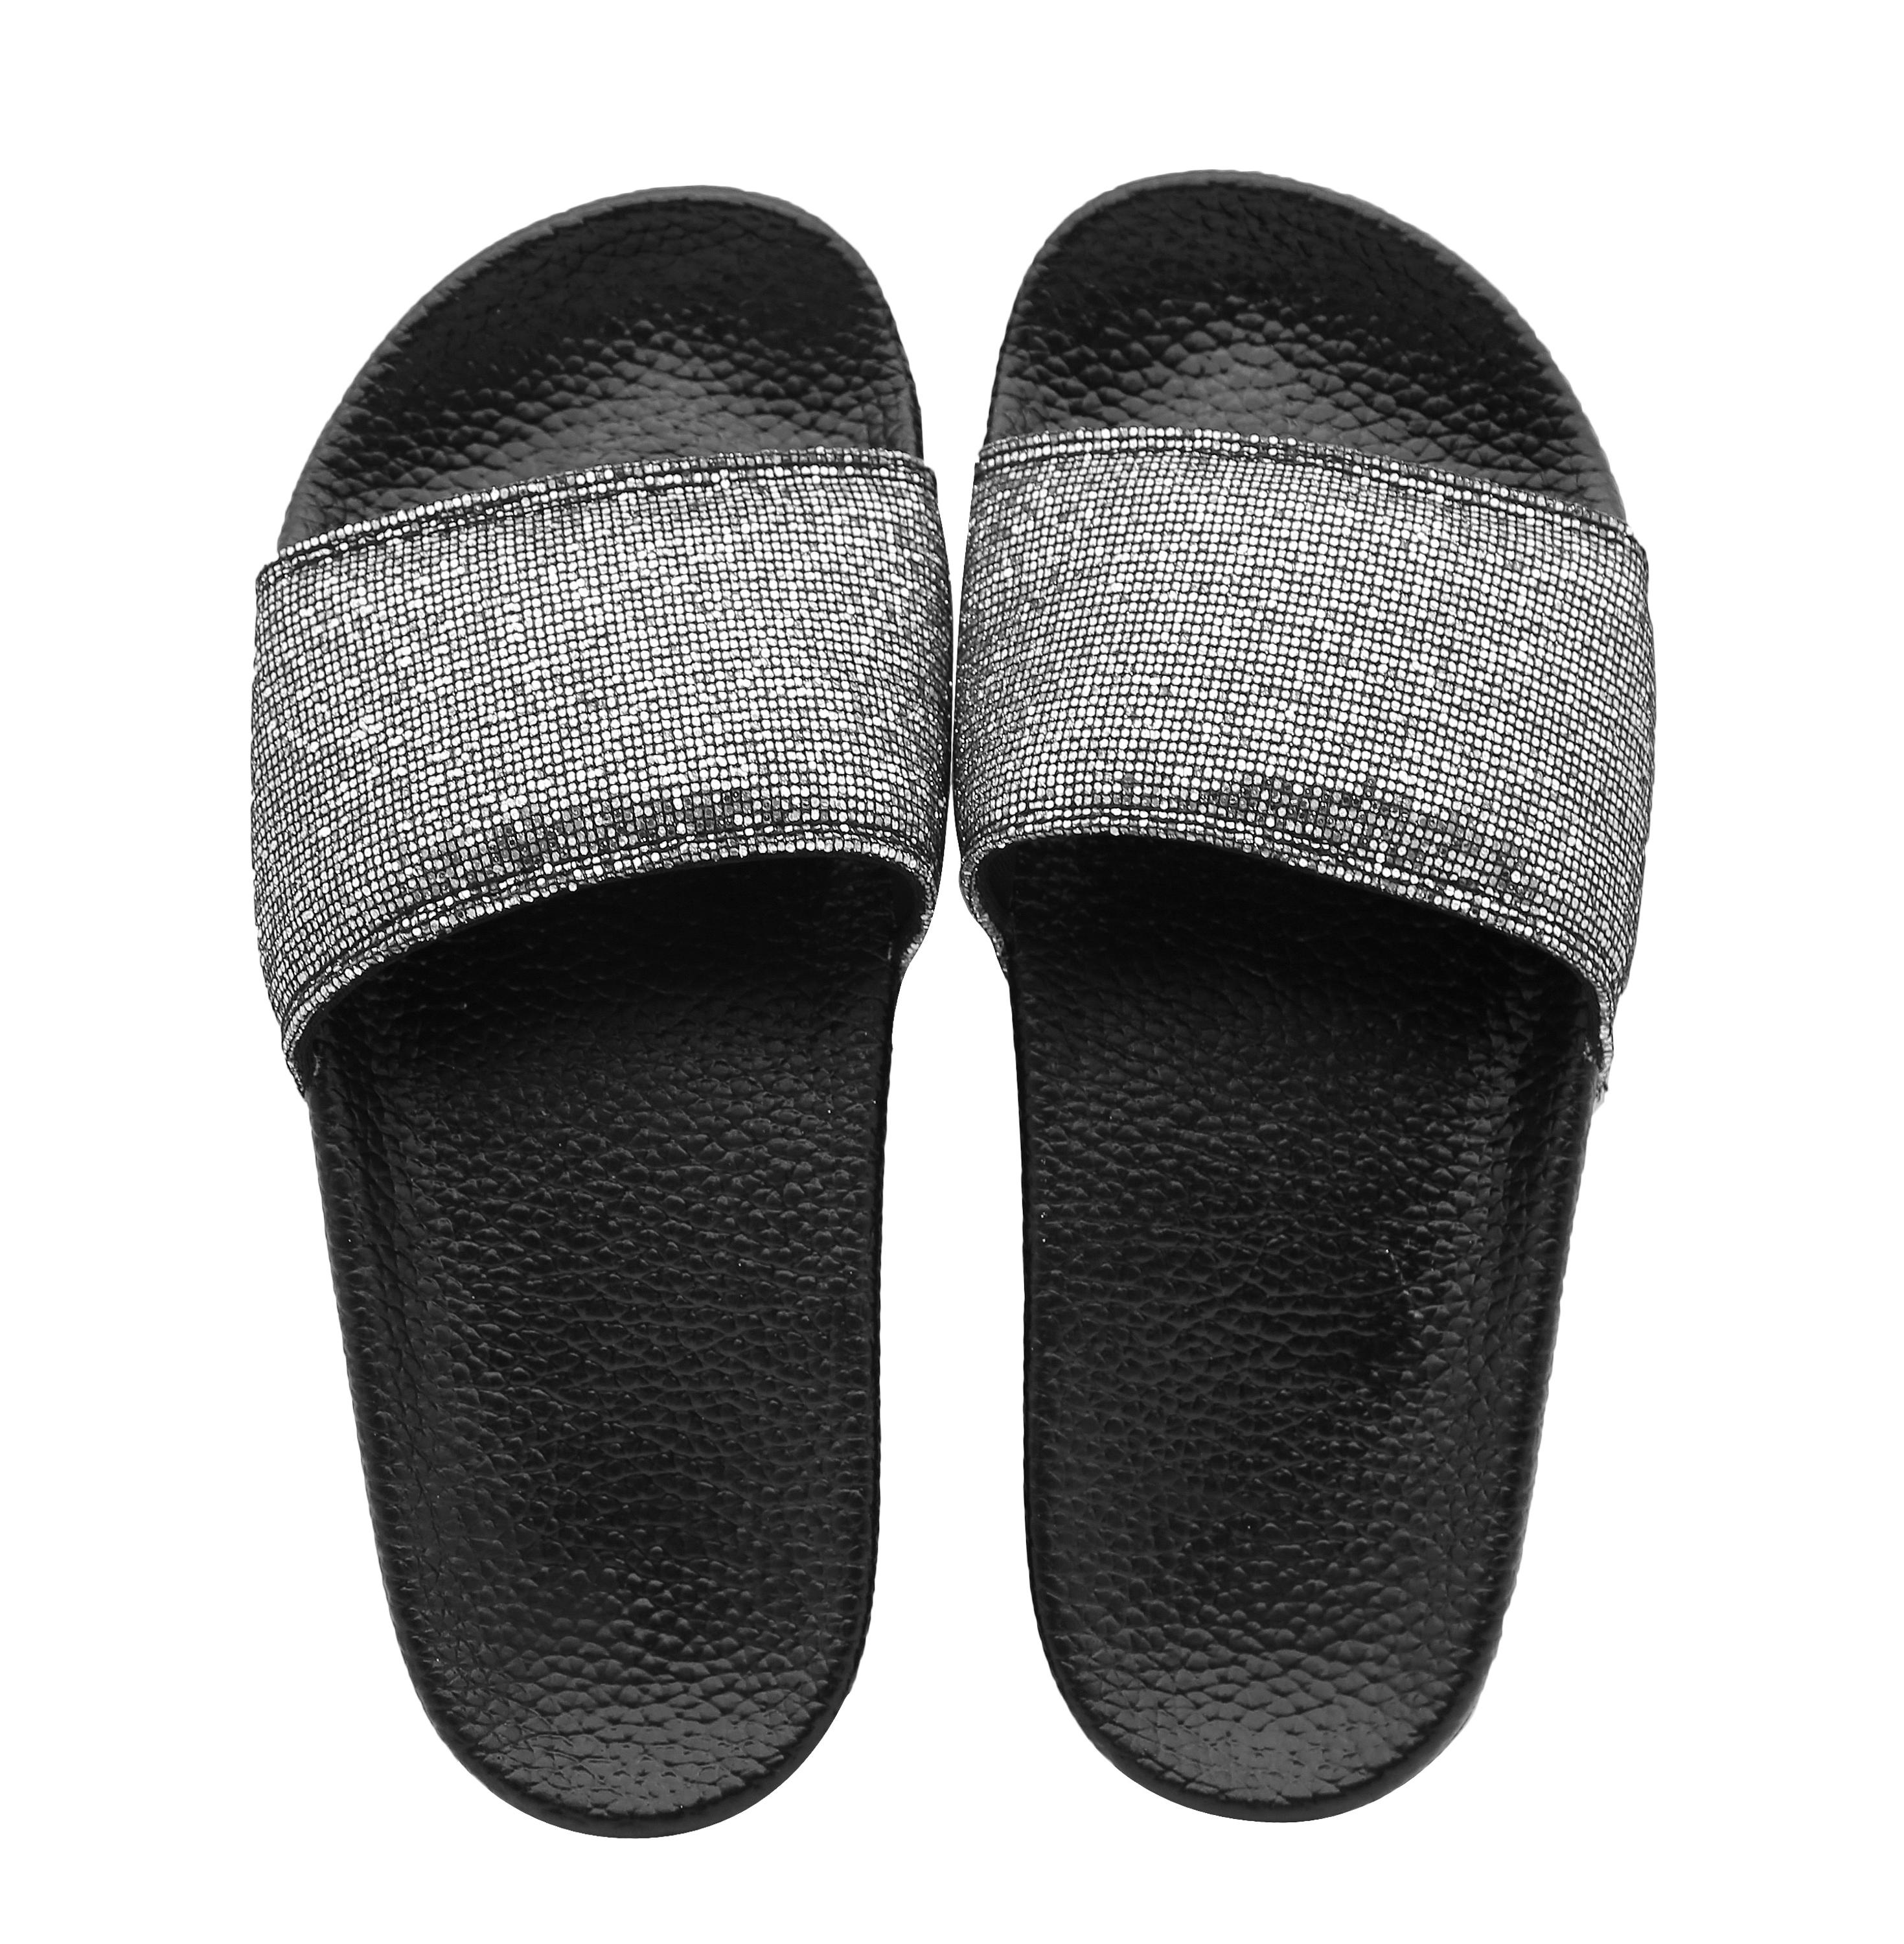 Wholesale hot women lining slide sandal